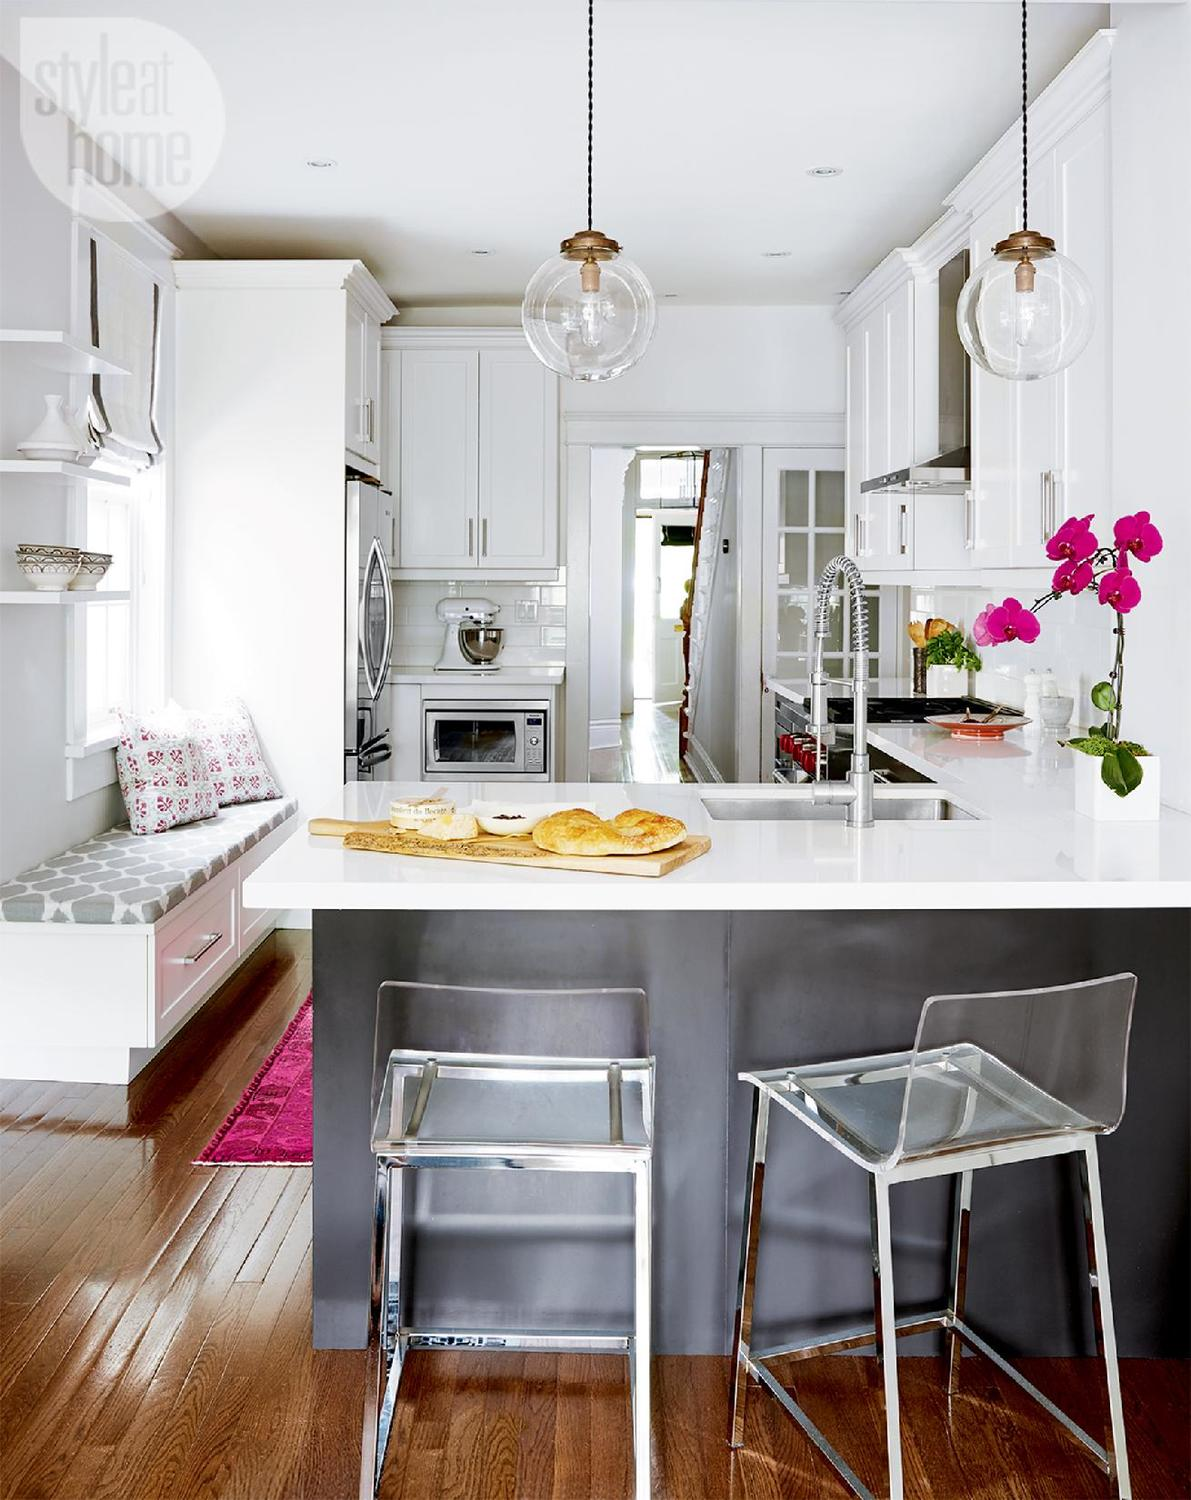 grey-and-white-kitchen-decorating-ideas-clear-lucite-bar-chairs